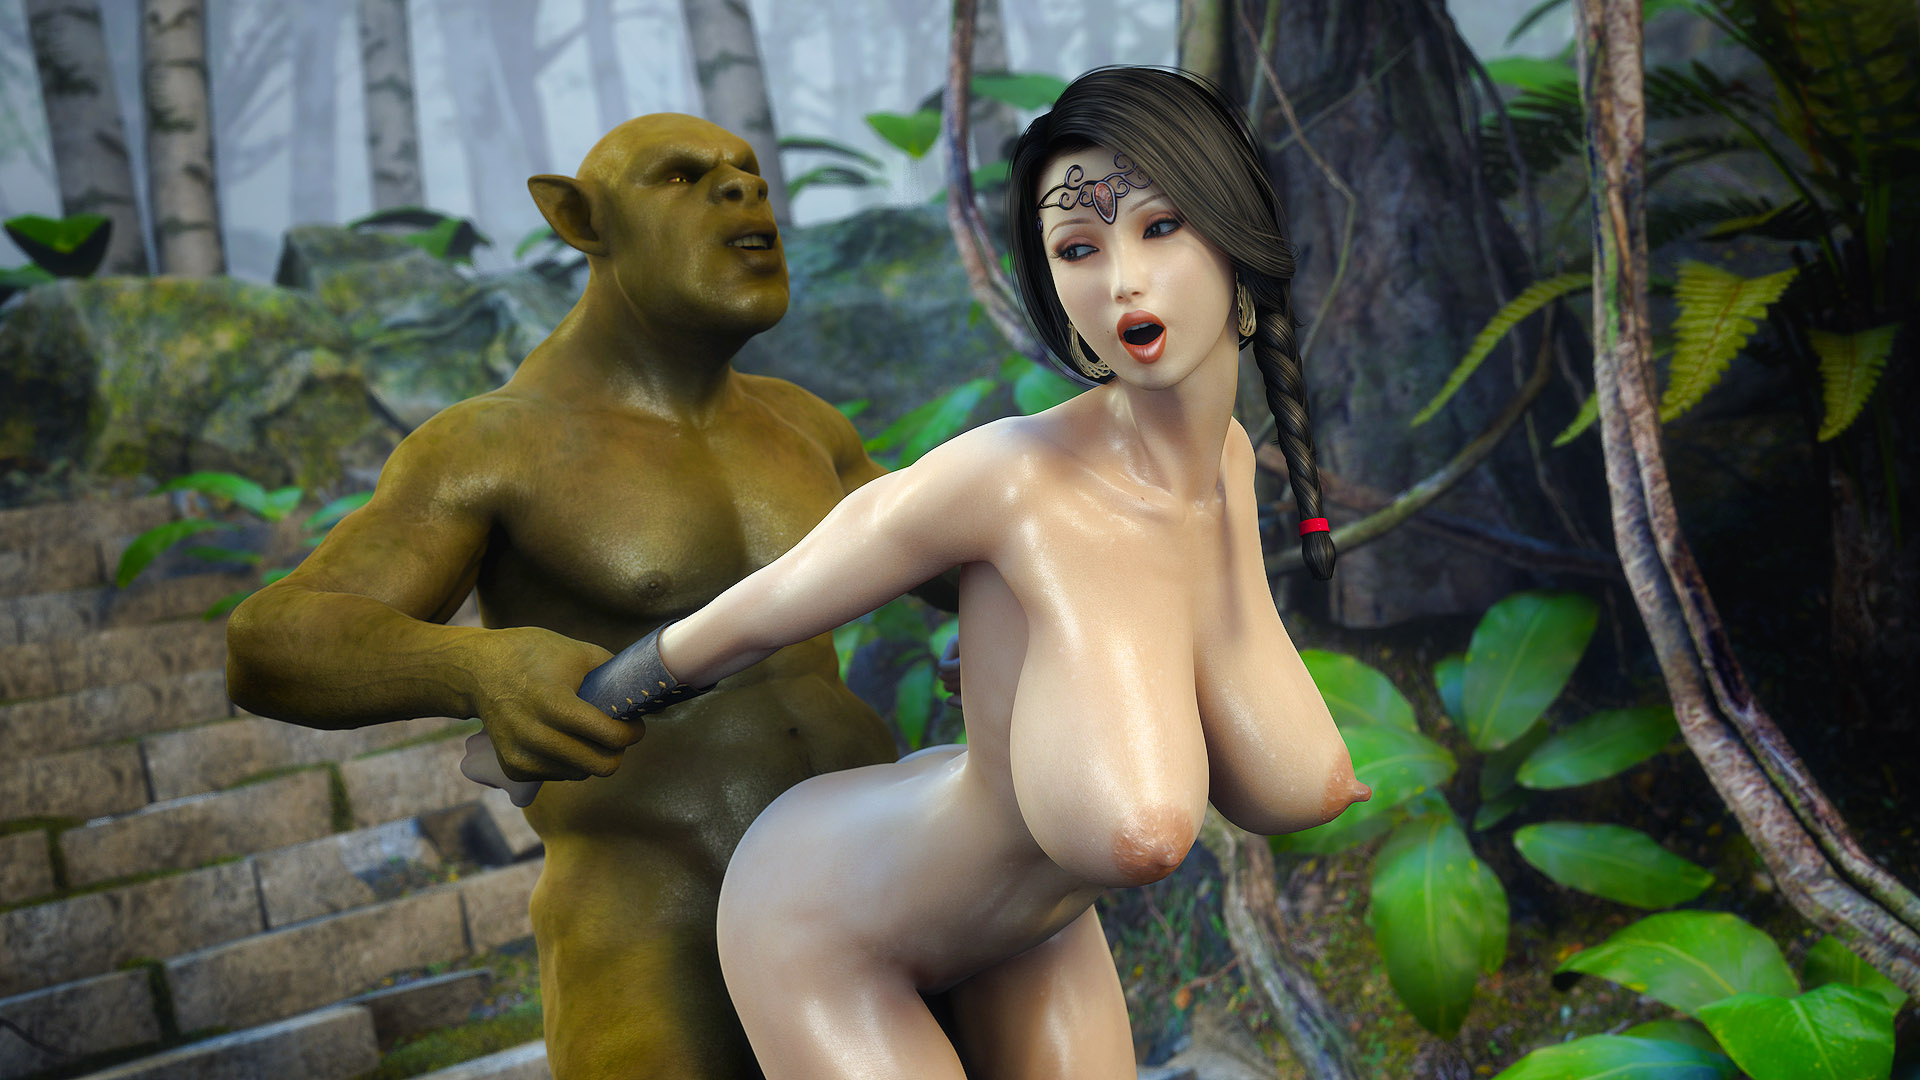 Fairies with ogre sex nude movies